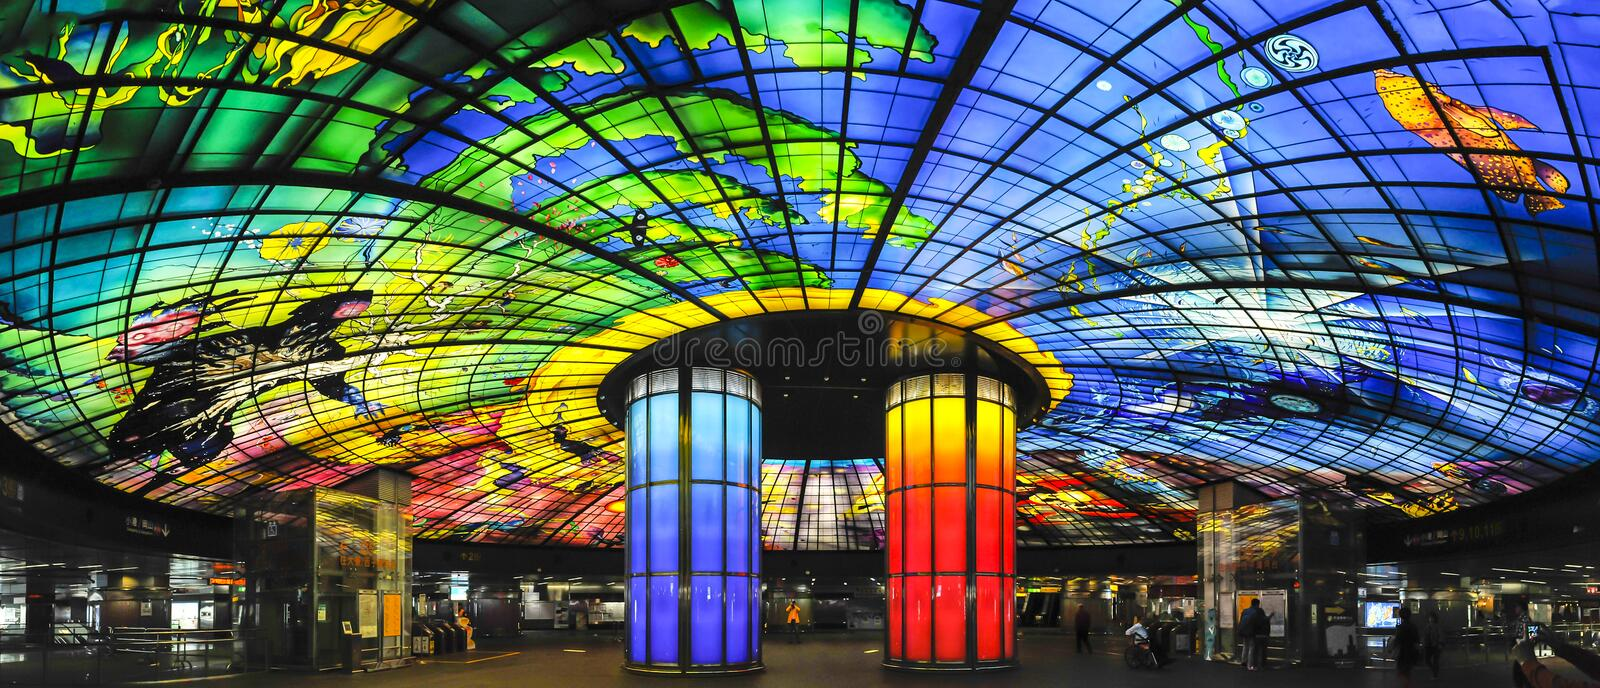 Formosa Boulevard Station. The Dome of Light at Formosa Boulevard Station, the central station of Kaohsiung subway system in Kaohsiung City, Taiwan stock image